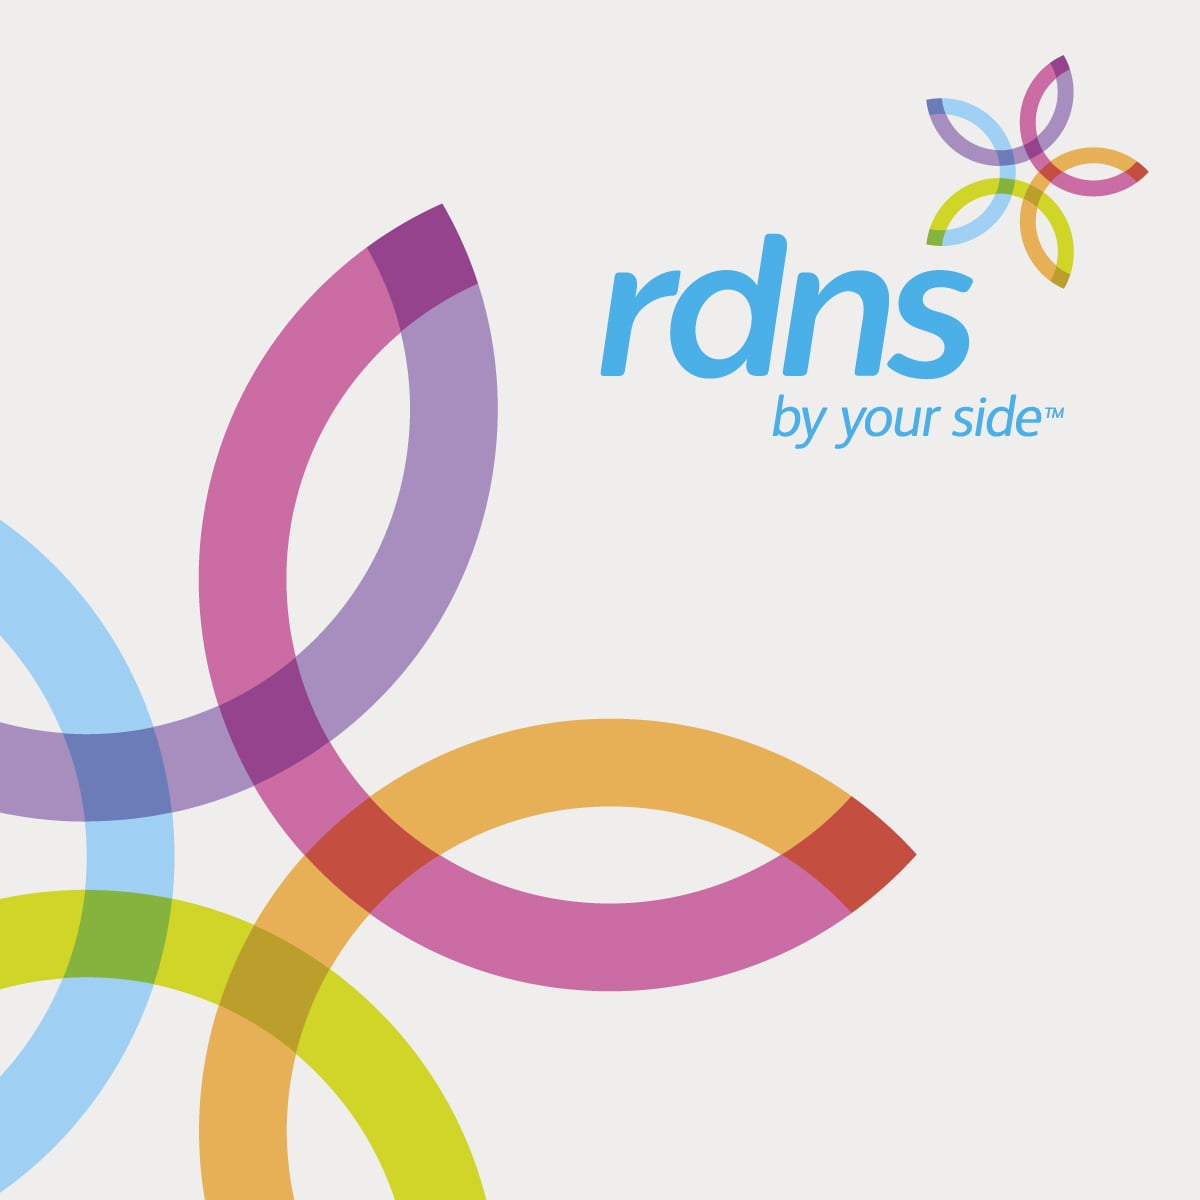 Davidson Branding Corporate Royal District Nursing Service RDNS Brand Strategy Brand Identity Logo Design Visual Language